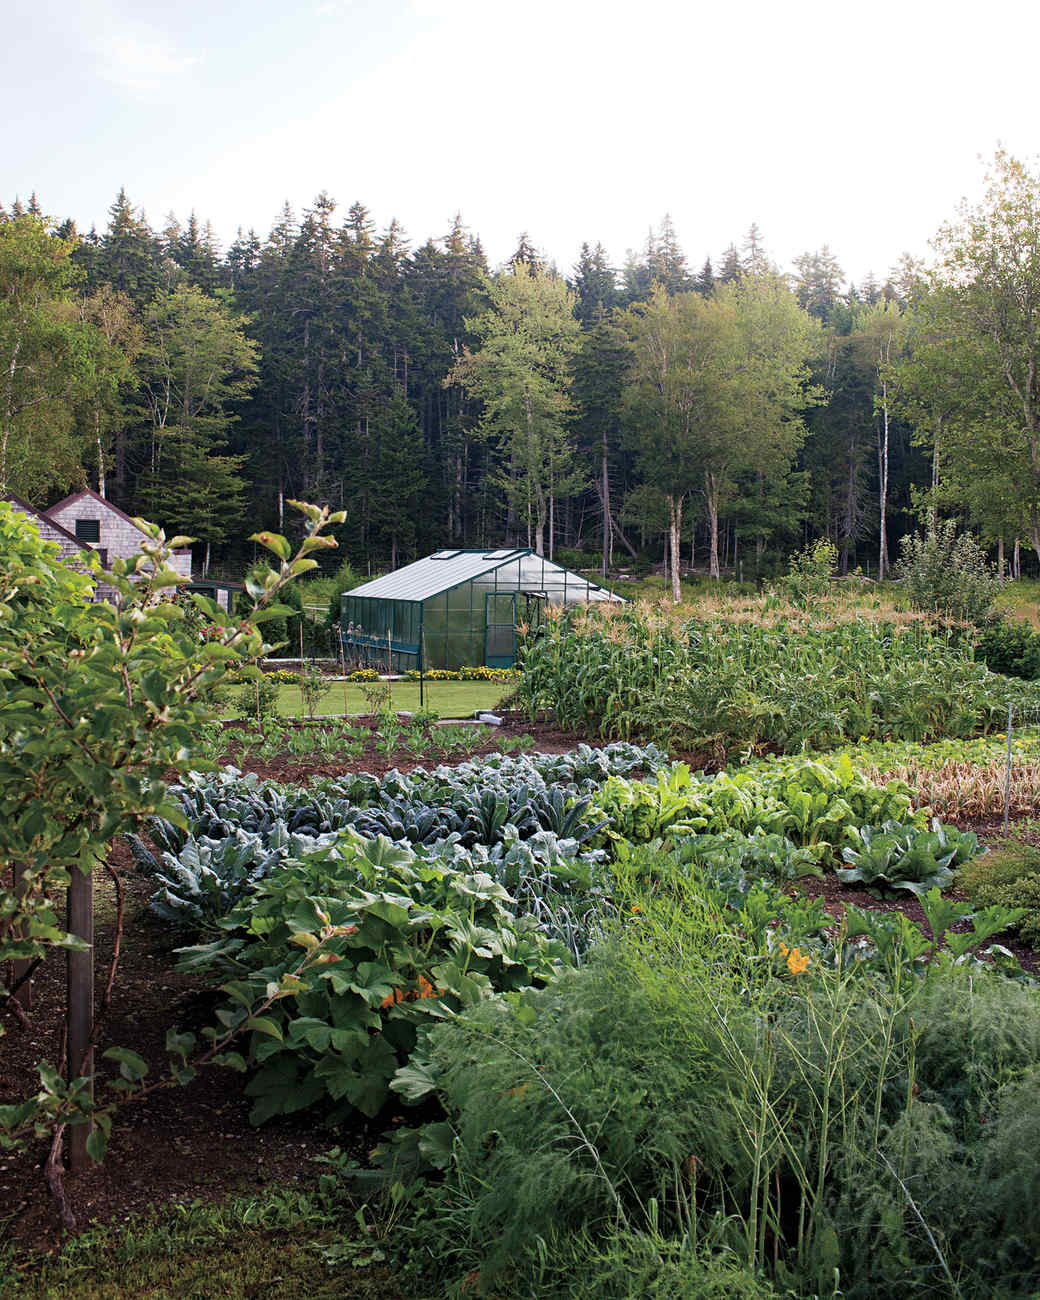 four-seasons-farm-garden-beds-md107849.jpg